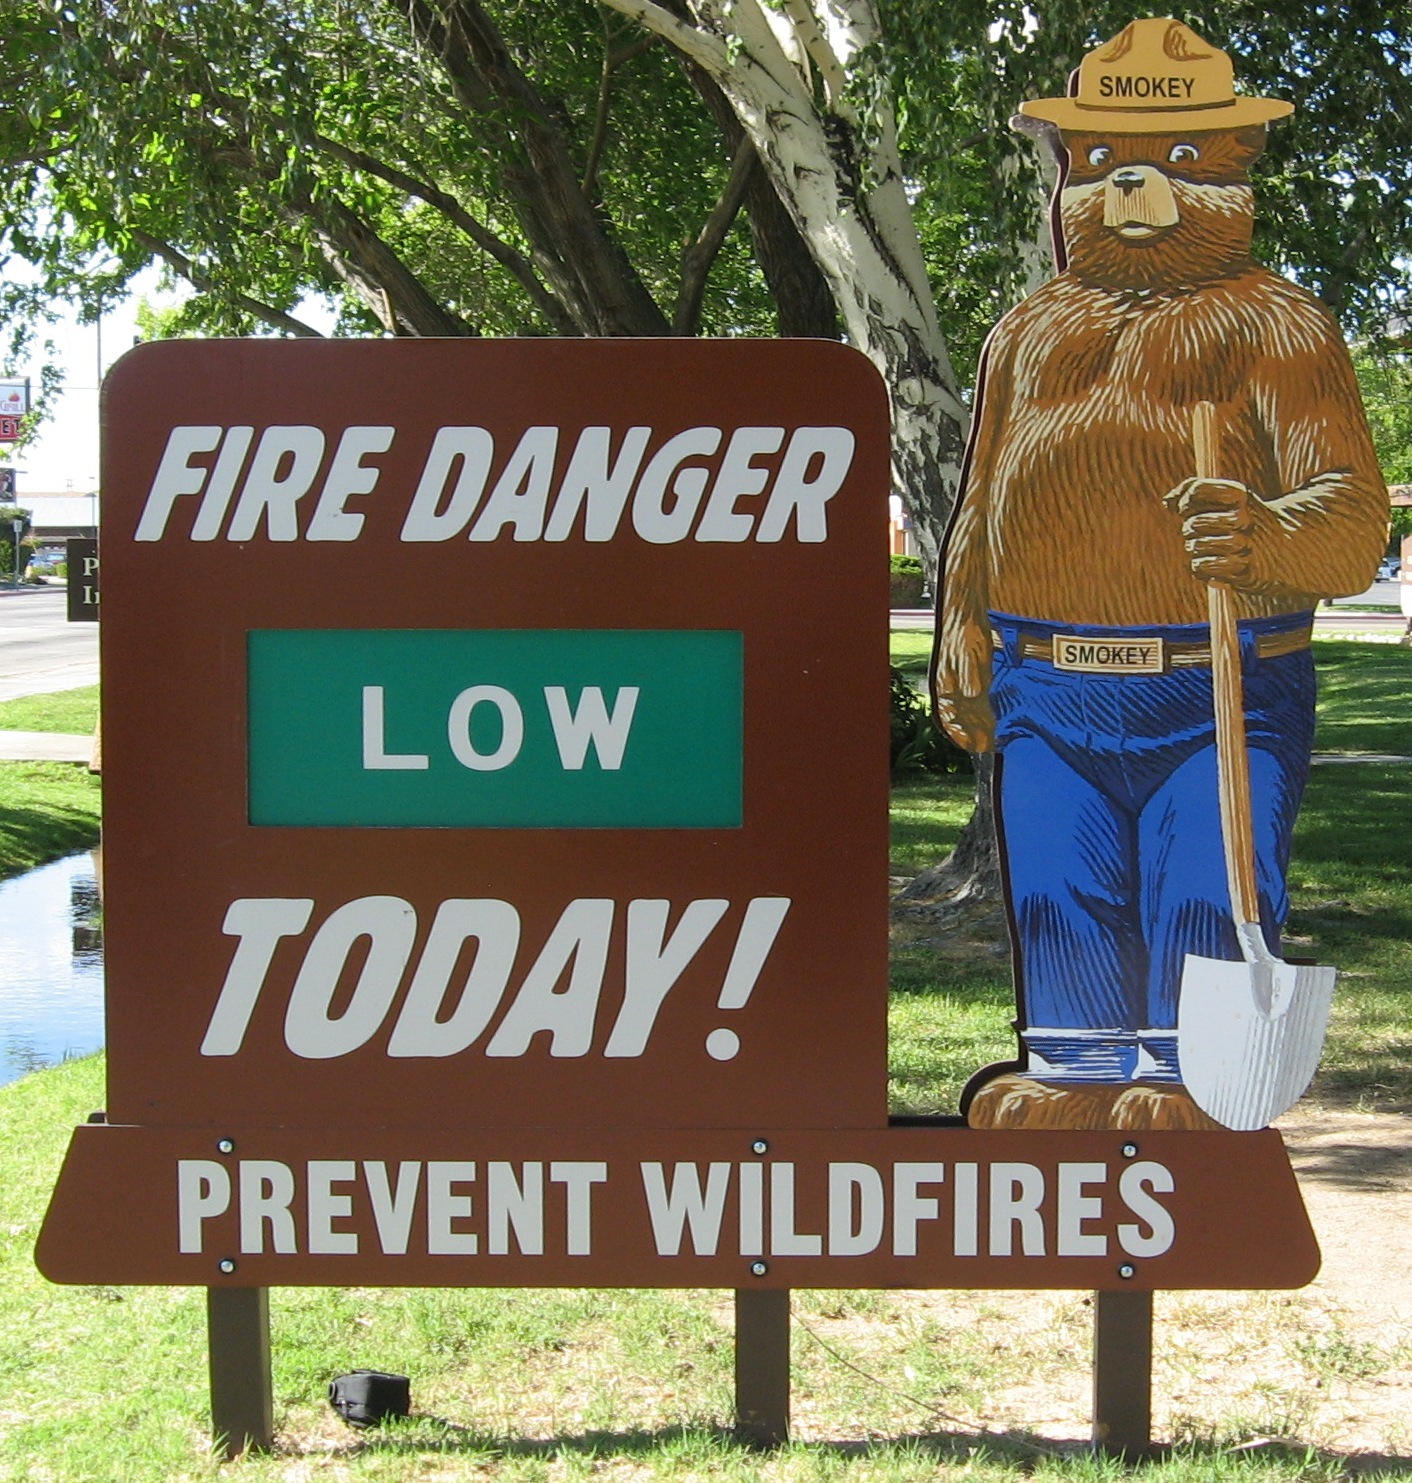 image of fire danger sign showing